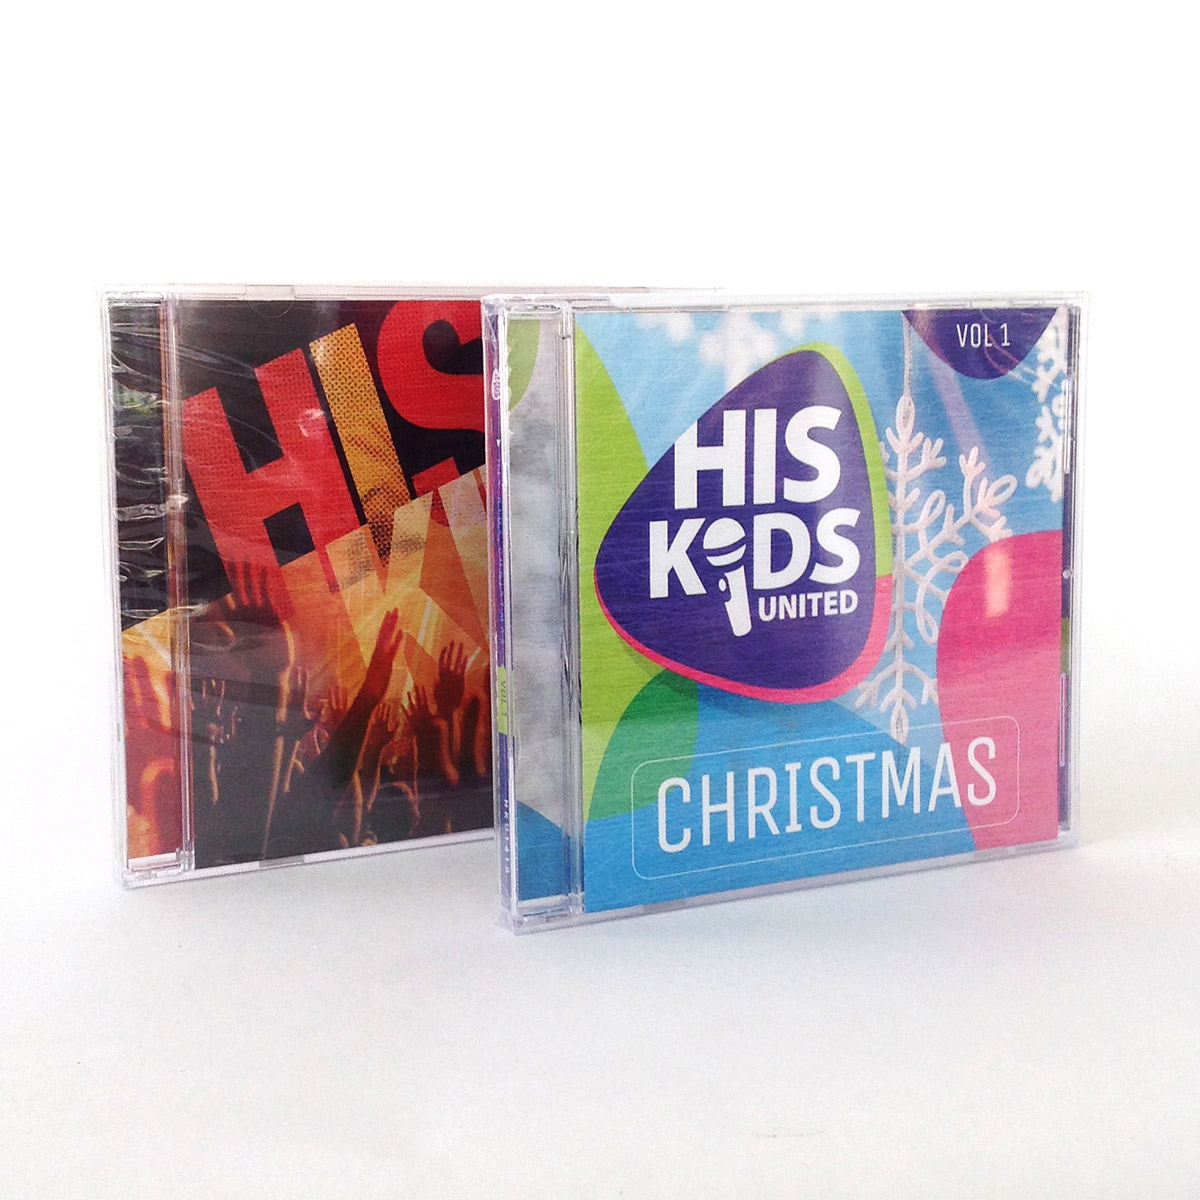 His Kids - CD / Compact Disc Replication